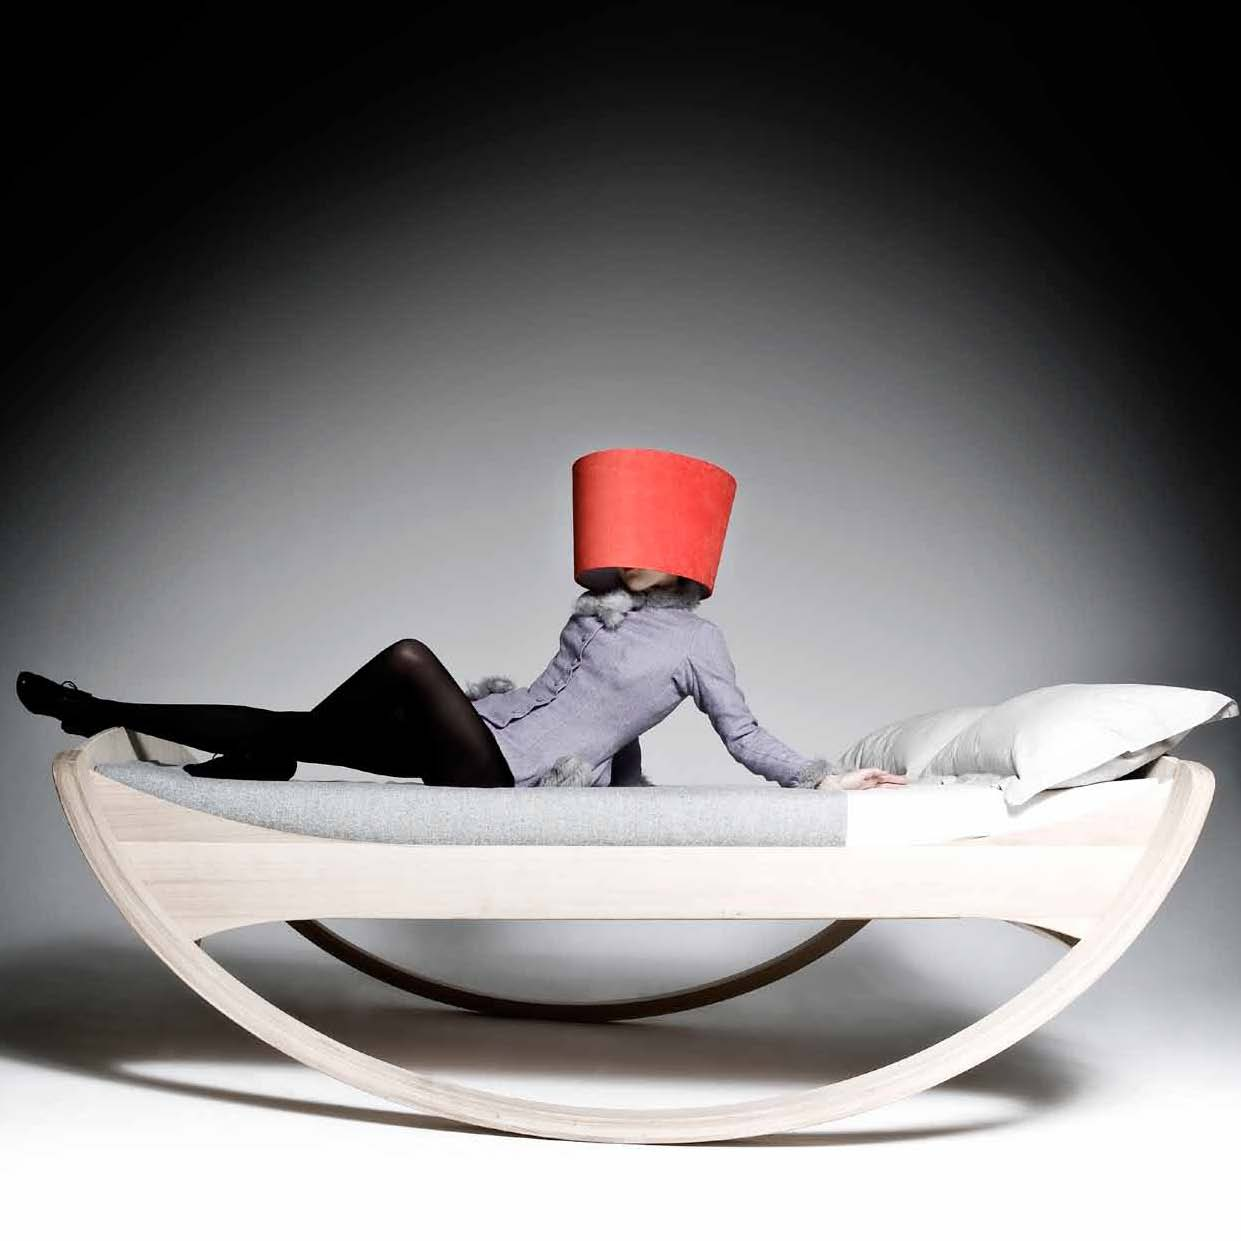 If It's Hip, It's Here: The Private Cloud Rocking Bed Evolves ...